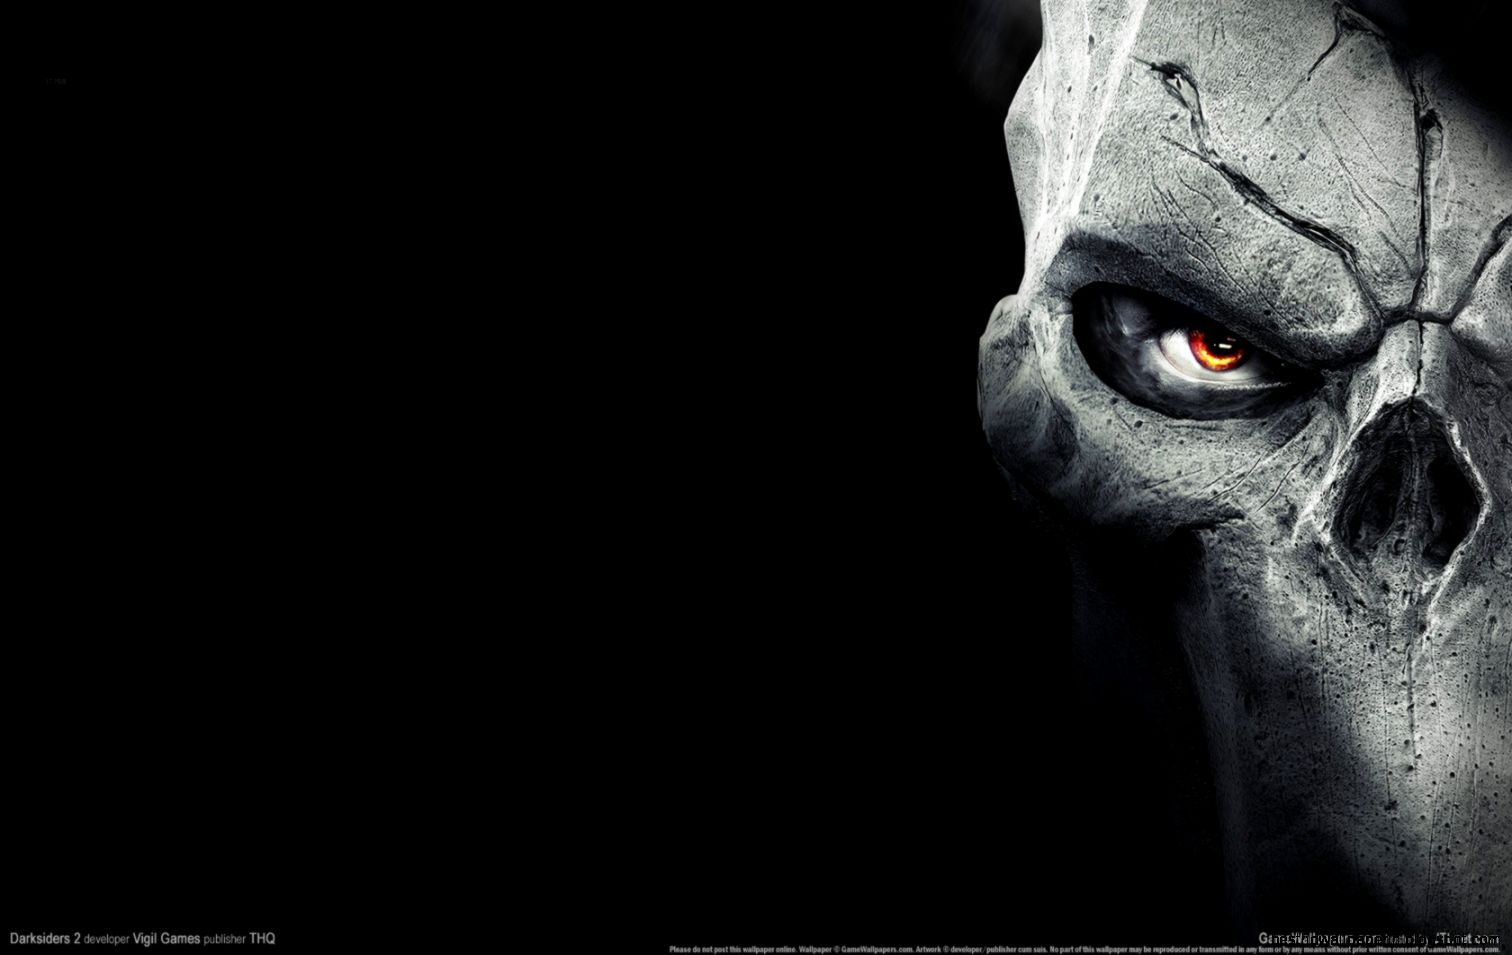 Darksiders 2 Wallpaper Hd 1080P Widescreen Best HD Wallpapers 1512x955